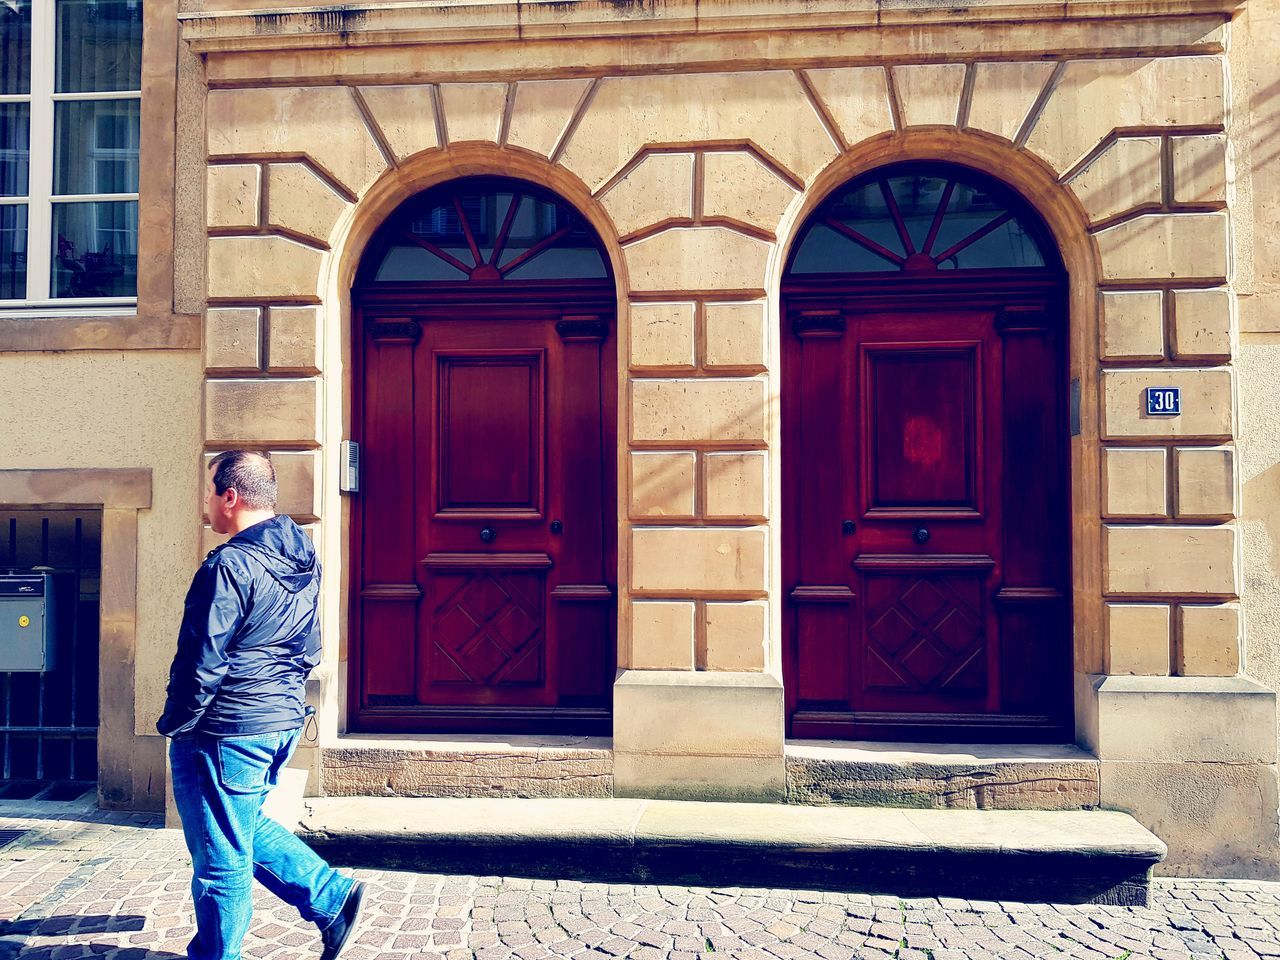 Door Entrance Doorway One Man Only One Person Building Exterior Architecture Outdoors Luxembourg Streetphotography Day Built Structure EyeEm EyeEmNewHere Eyeem Photography